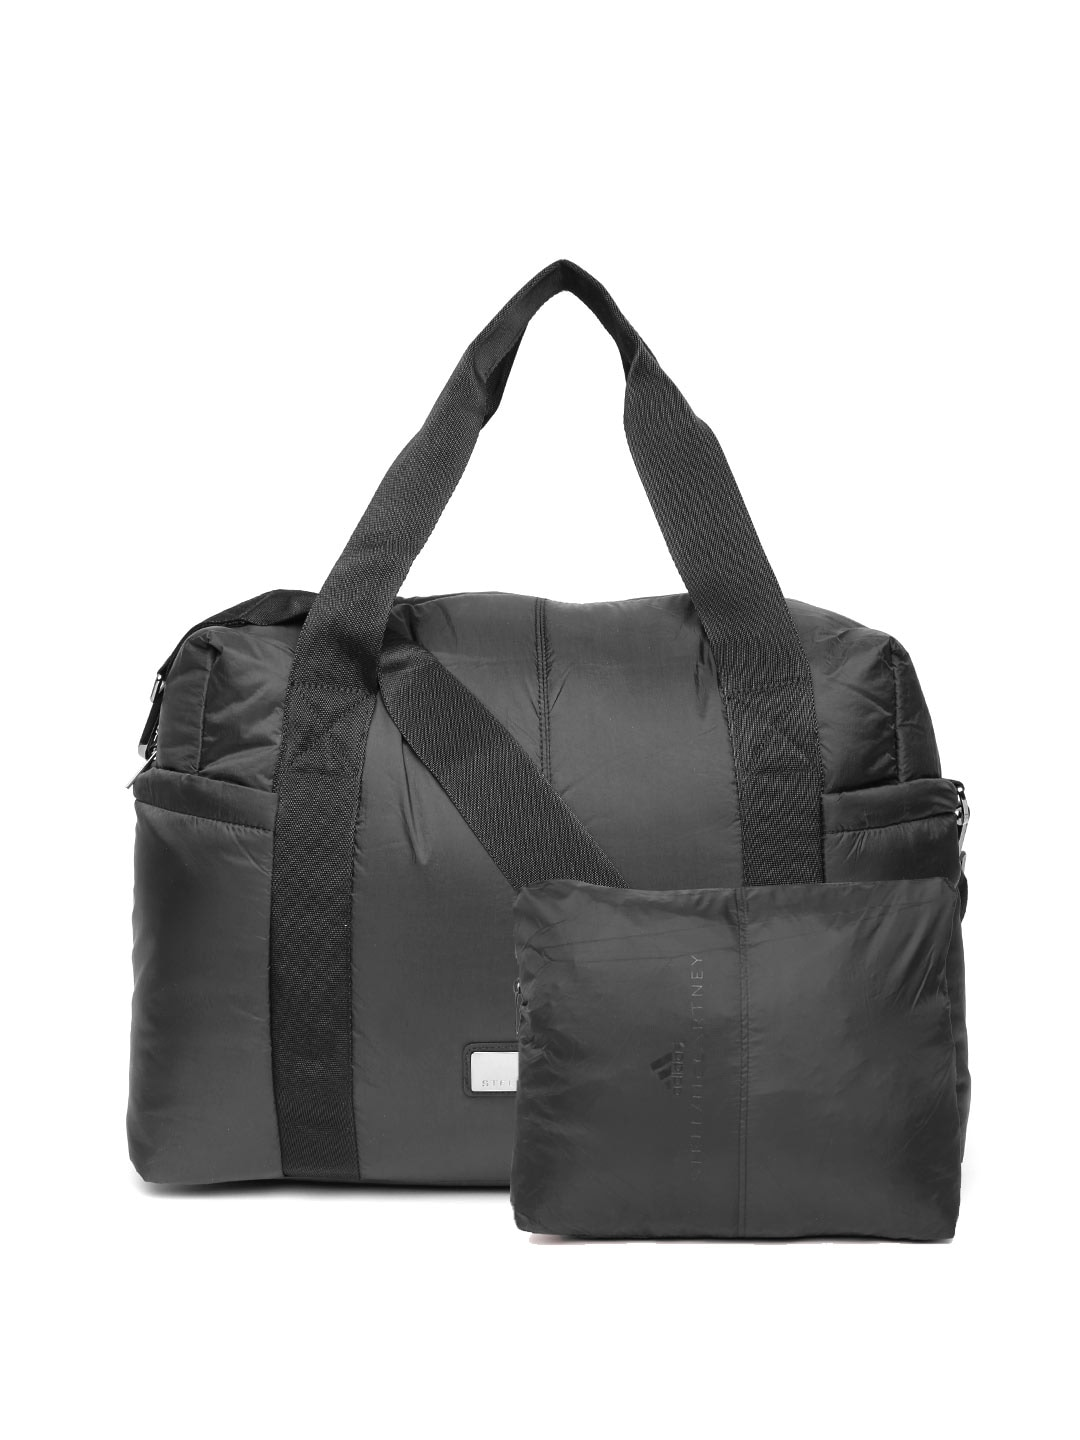 Adidas Bags - Buy Adidas Bags, Backpacks online in India d6271b0124